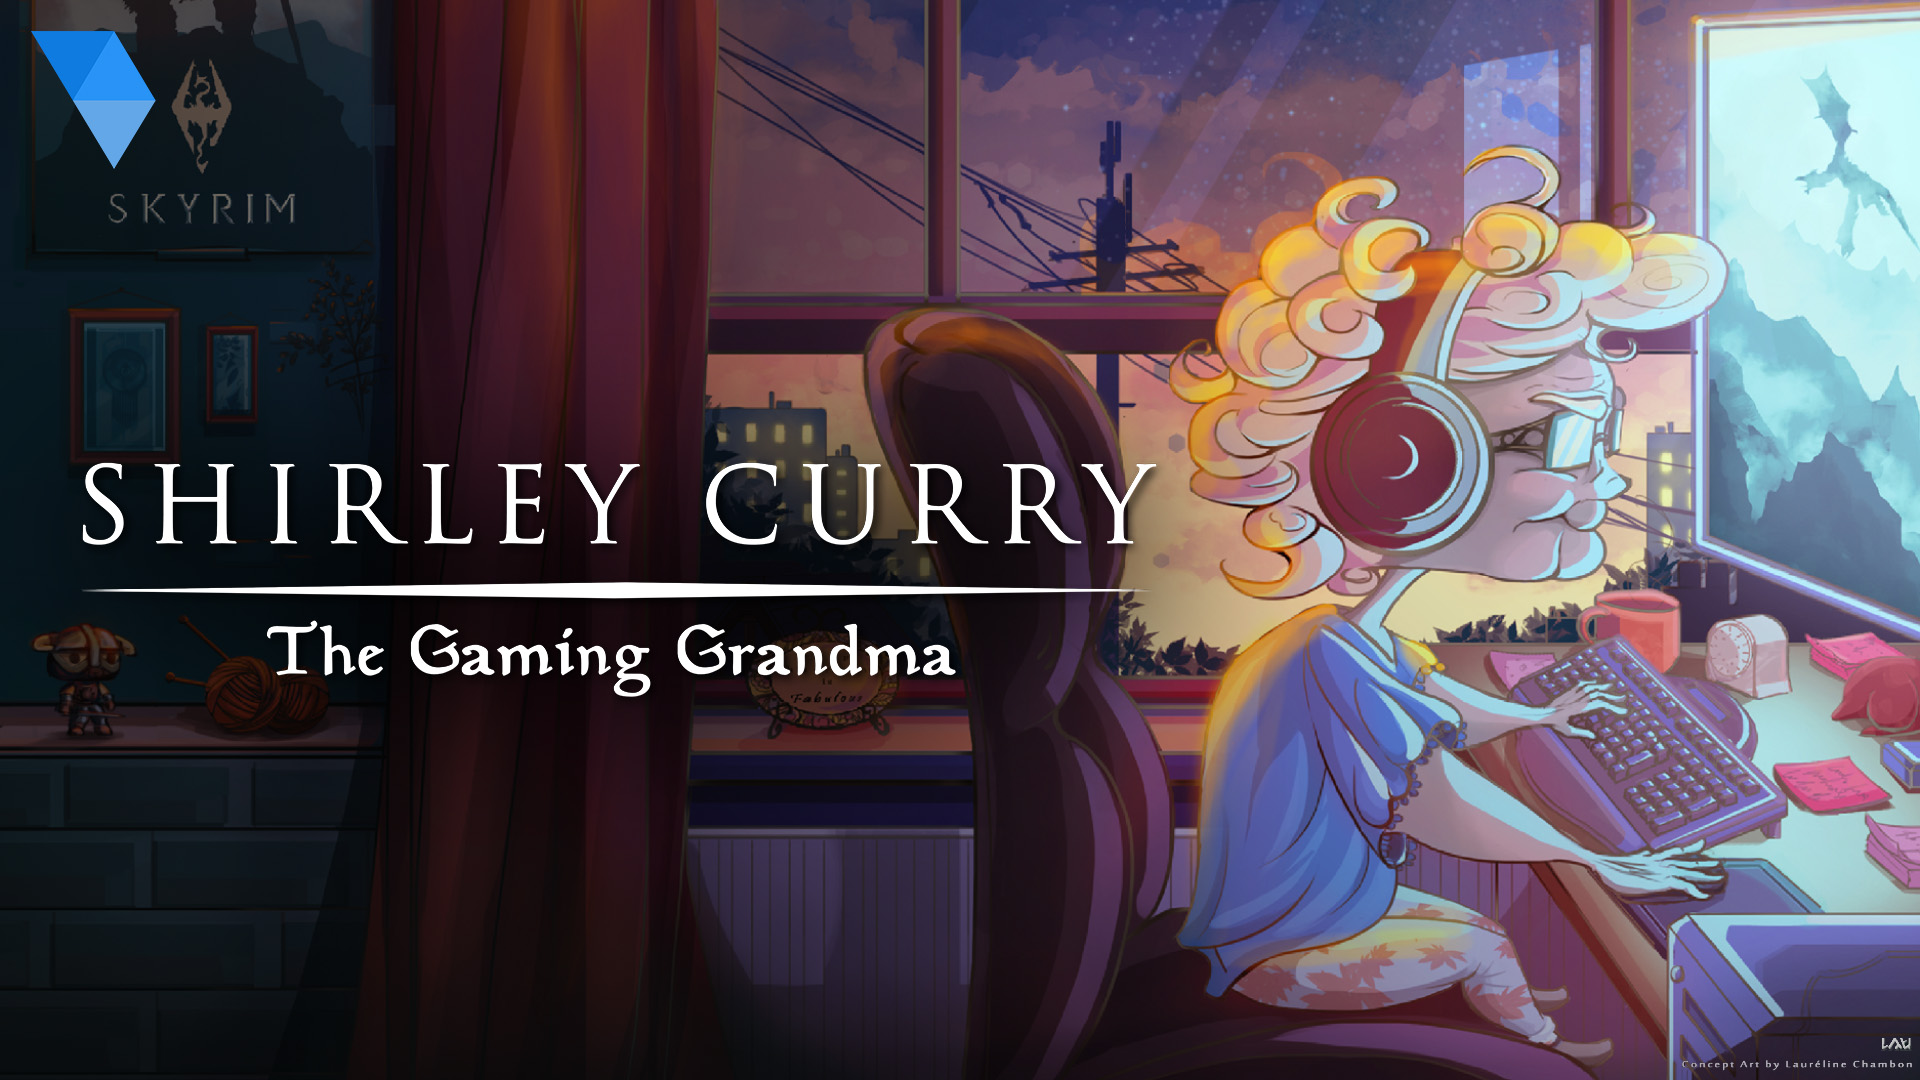 New documentary explores the life of Shirley Curry, The Gaming Grandma screenshot